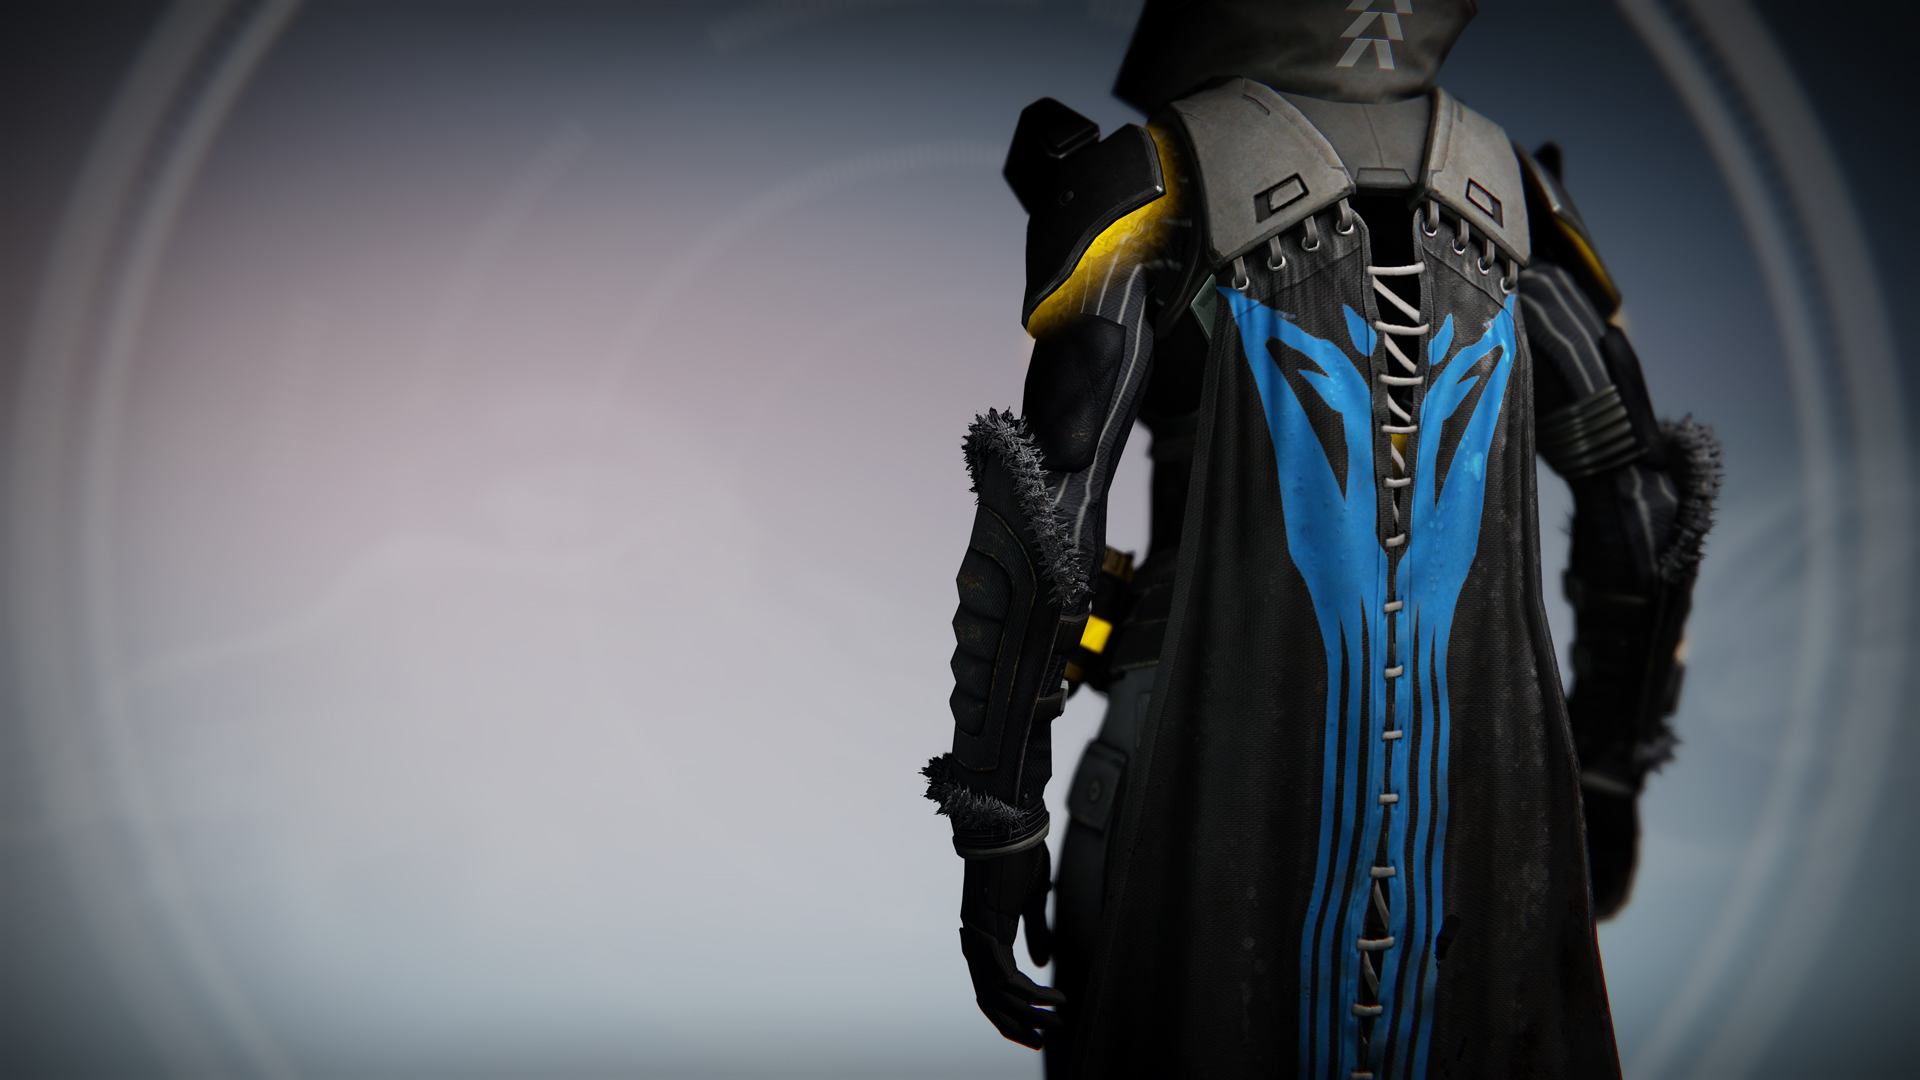 Destiny: Taken-style armor, weapons and new emotes coming ...